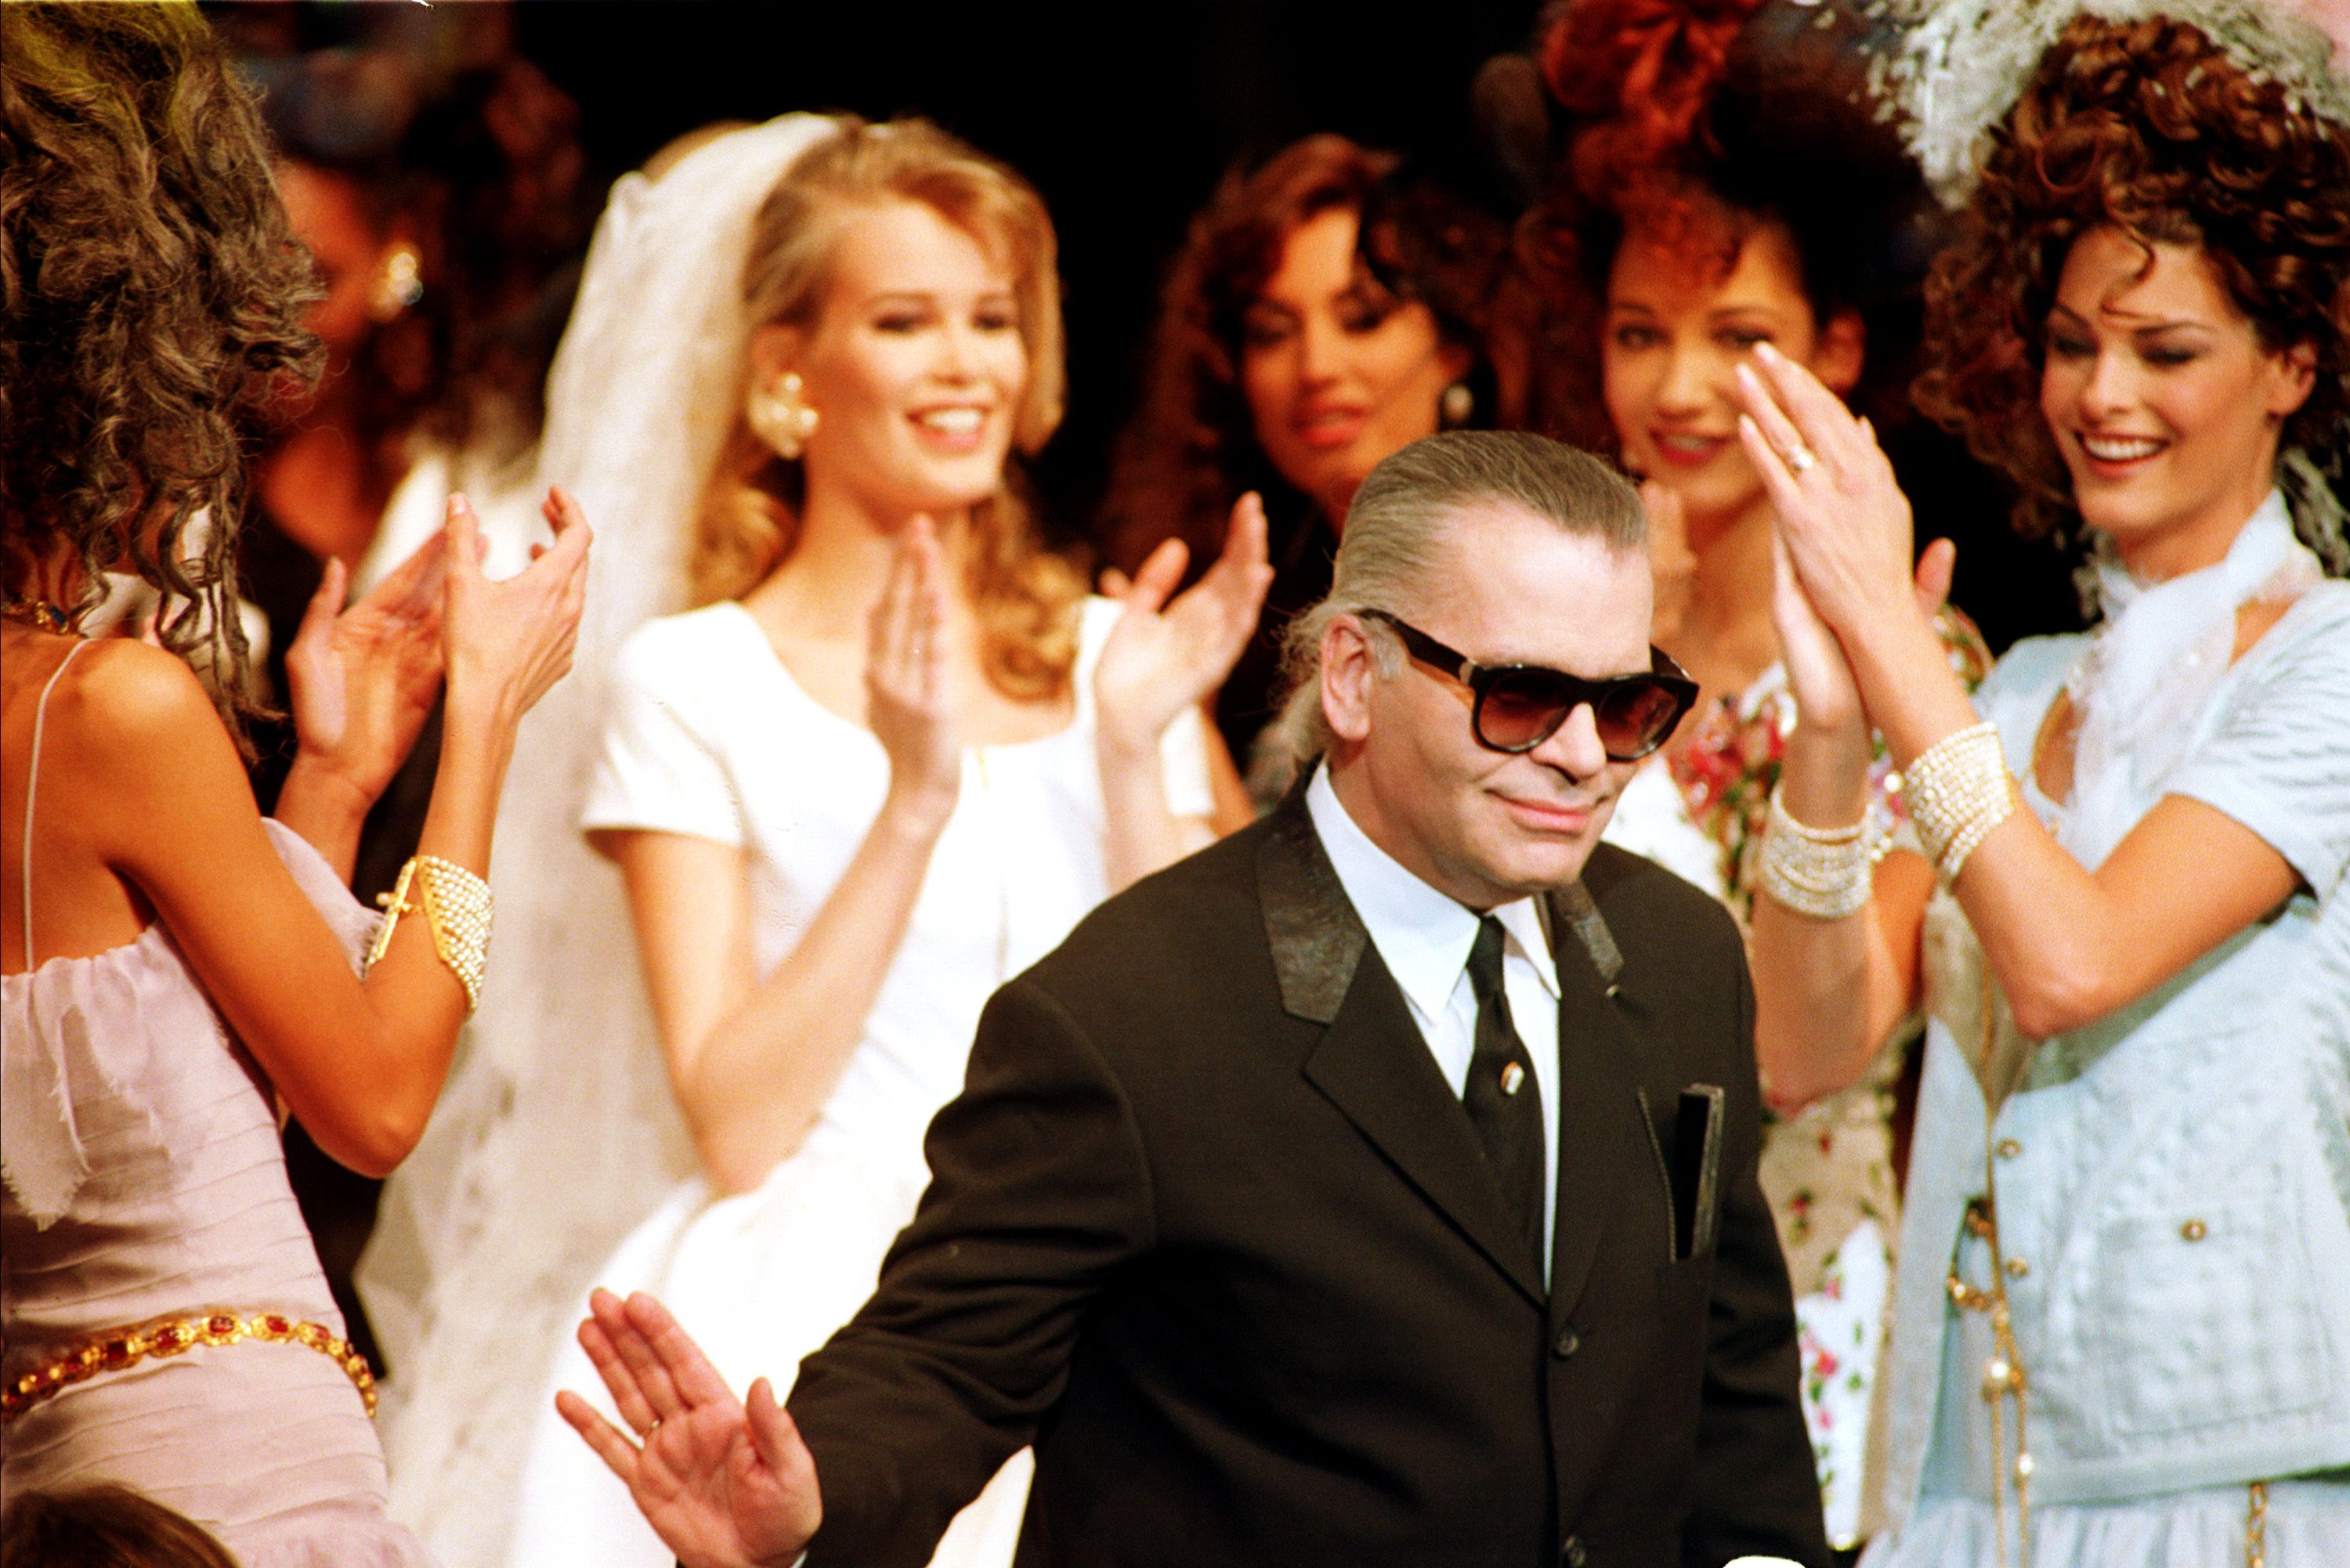 Lagerfeld Evangelista Schiffer German designer Karl Lagerfeld acknowledges cheers from the audience and from his models after presentation of the show he designed for French fashion house Chanel in Paris, France, . The presentation is for the 1992 spring and summer haute couture collection. At left, in bridal wear, is German model Claudia Schiffer, and at right is Canadian model Linda EvangelistaFASHION CHANEL LAGERFELD, PARIS, France